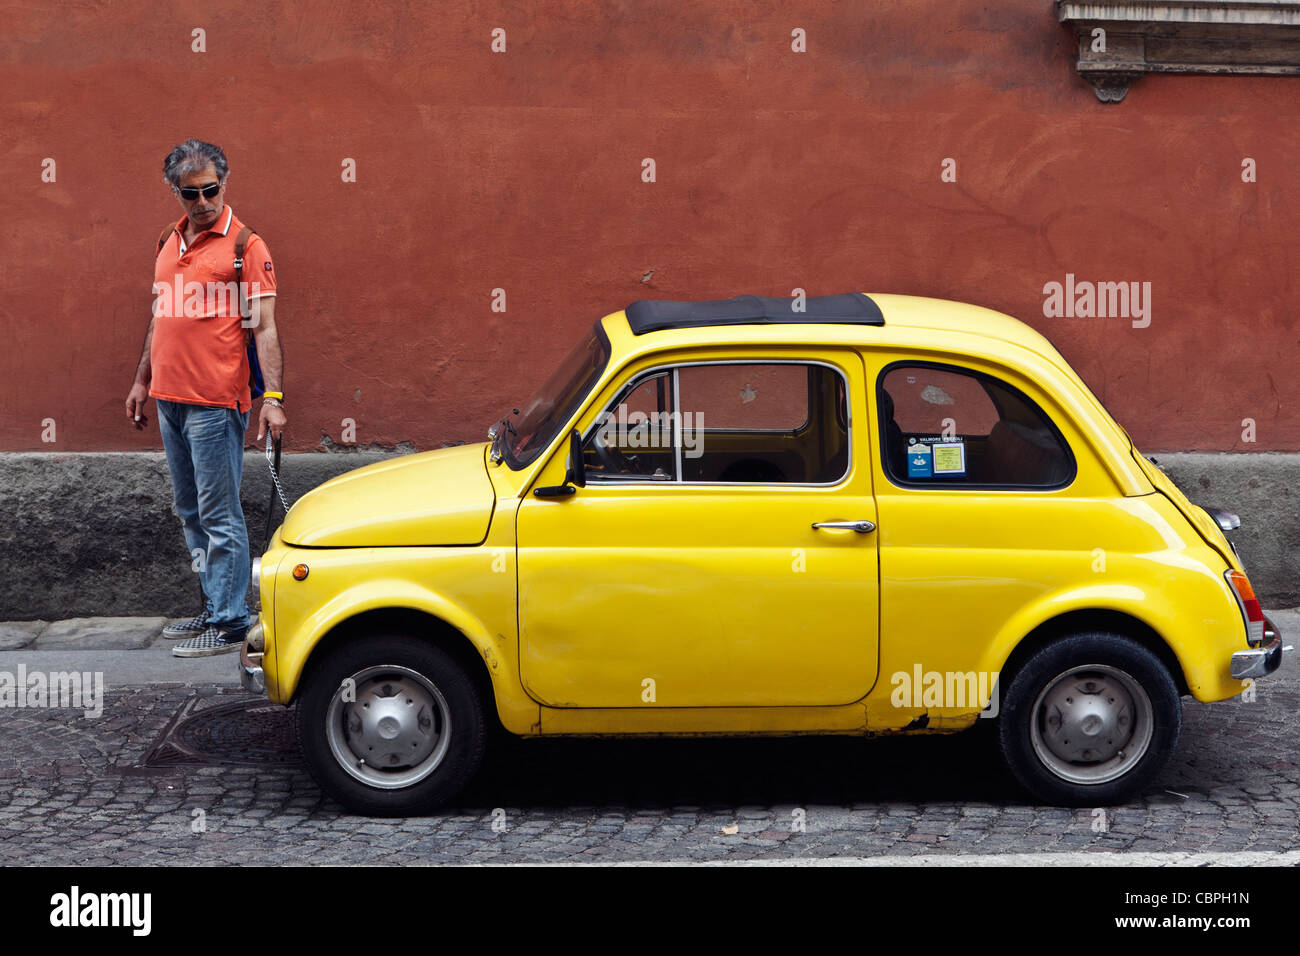 old yellow fiat 500 stockfotos old yellow fiat 500 bilder alamy. Black Bedroom Furniture Sets. Home Design Ideas